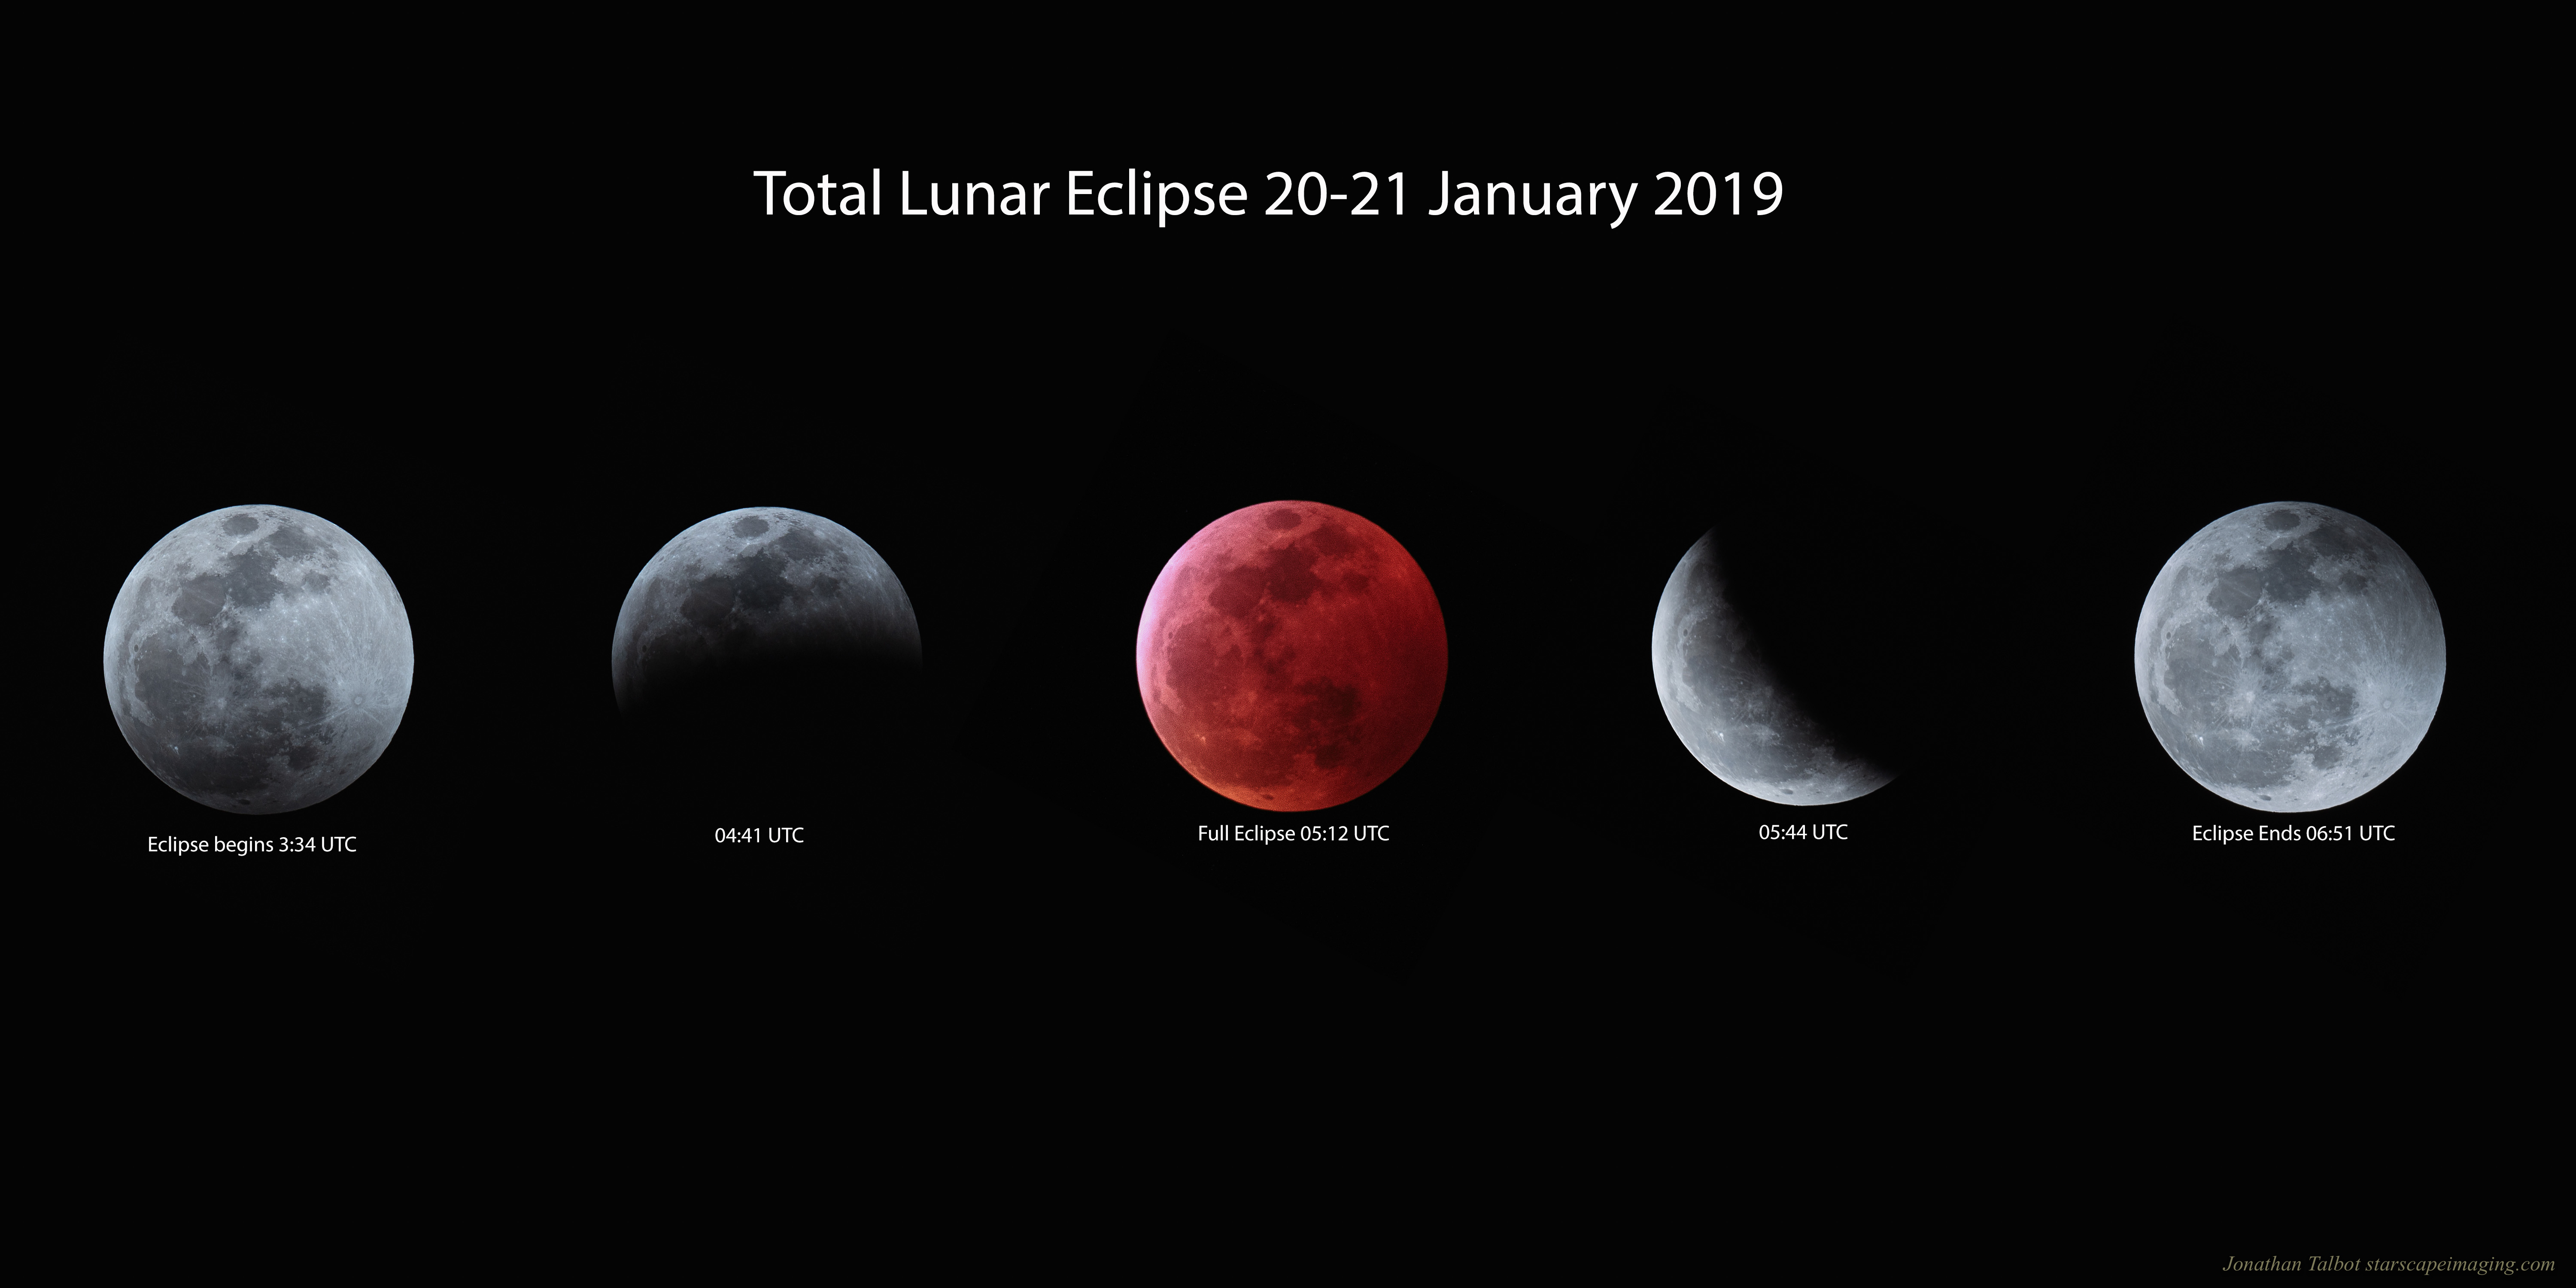 Total Lunar Eclipse 20-21 January 2019